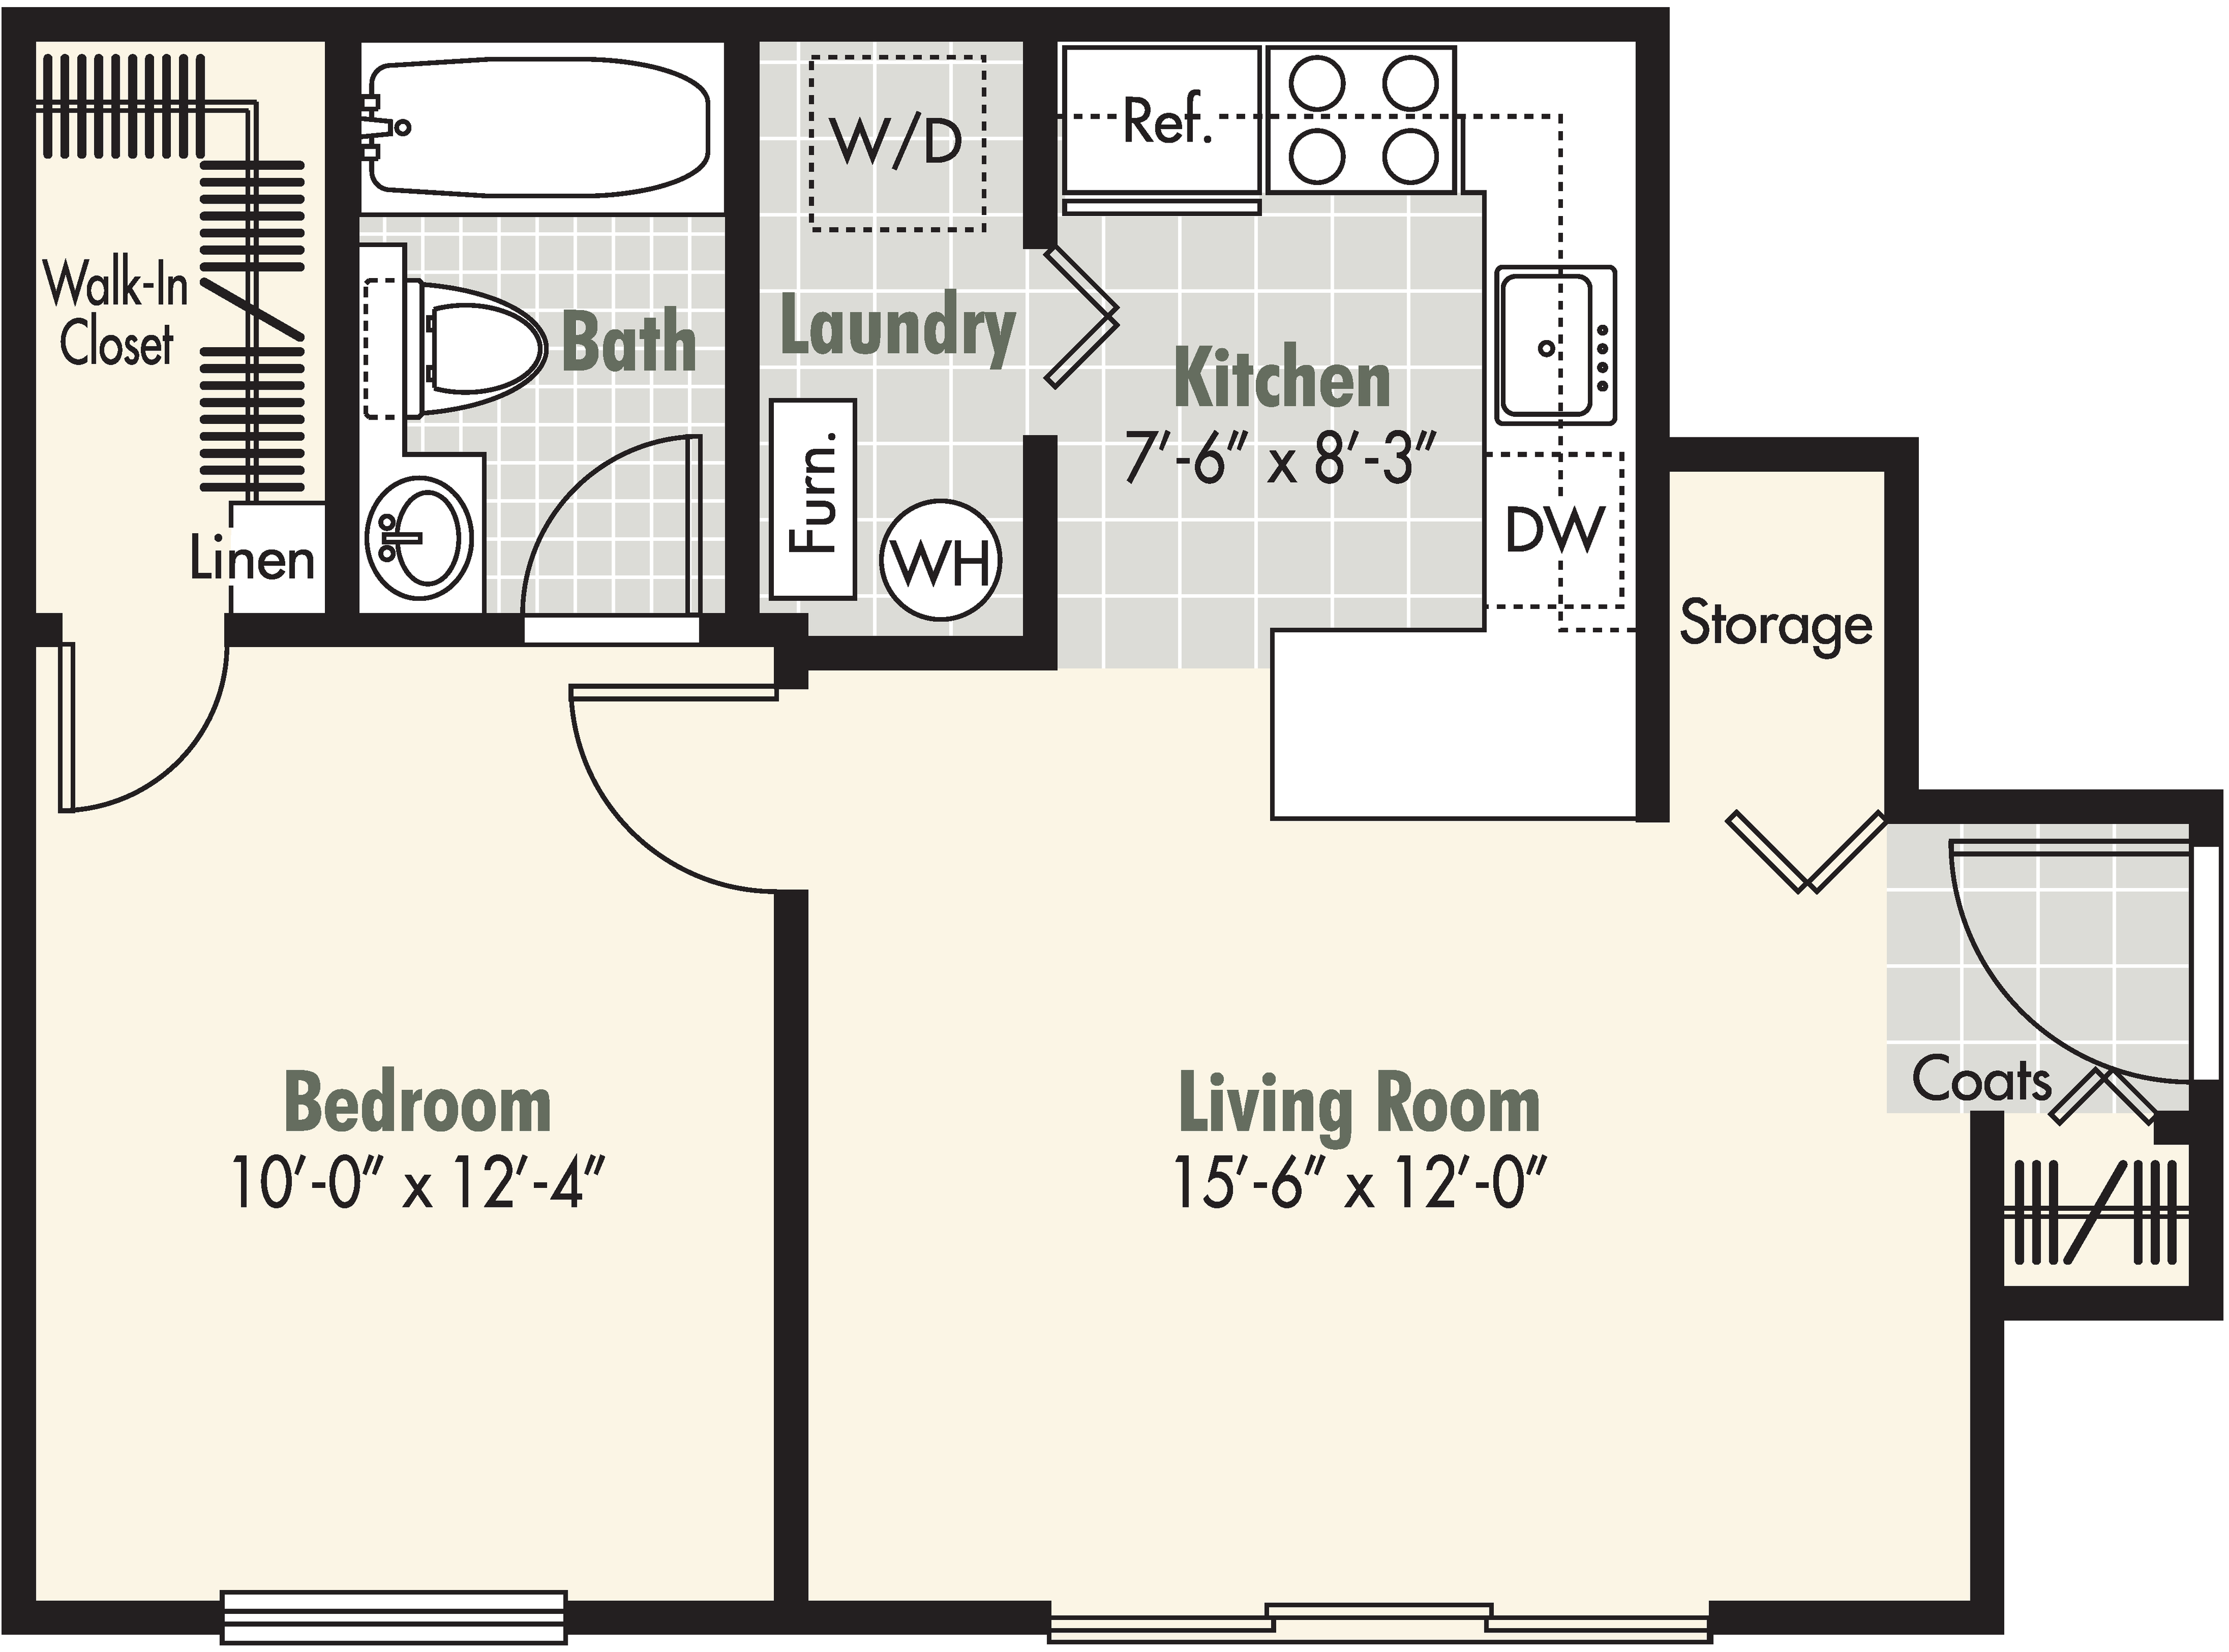 1 Bedroom - 1 Bath